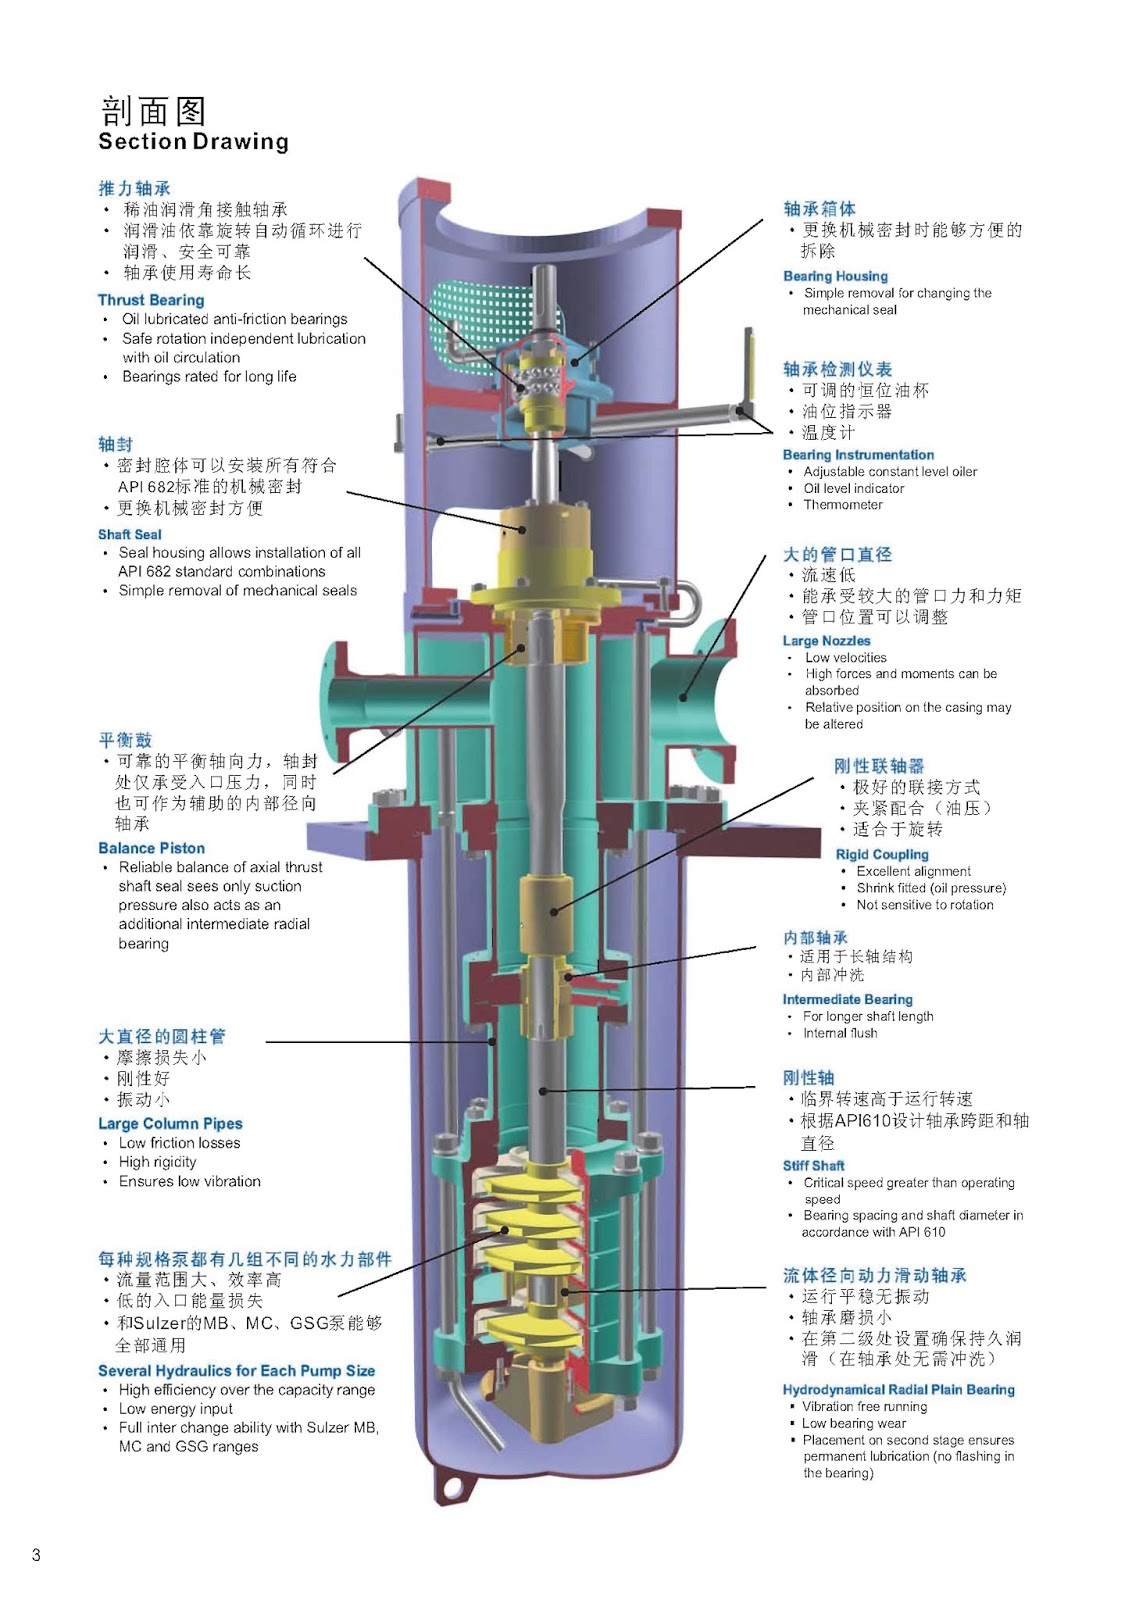 Multi Stage Pump Schematic Diagrams Fire Engine Centrifugal Cutaway Diagram Nuovo Pignone Replaceable Vertical Barrel Multistage Headtech